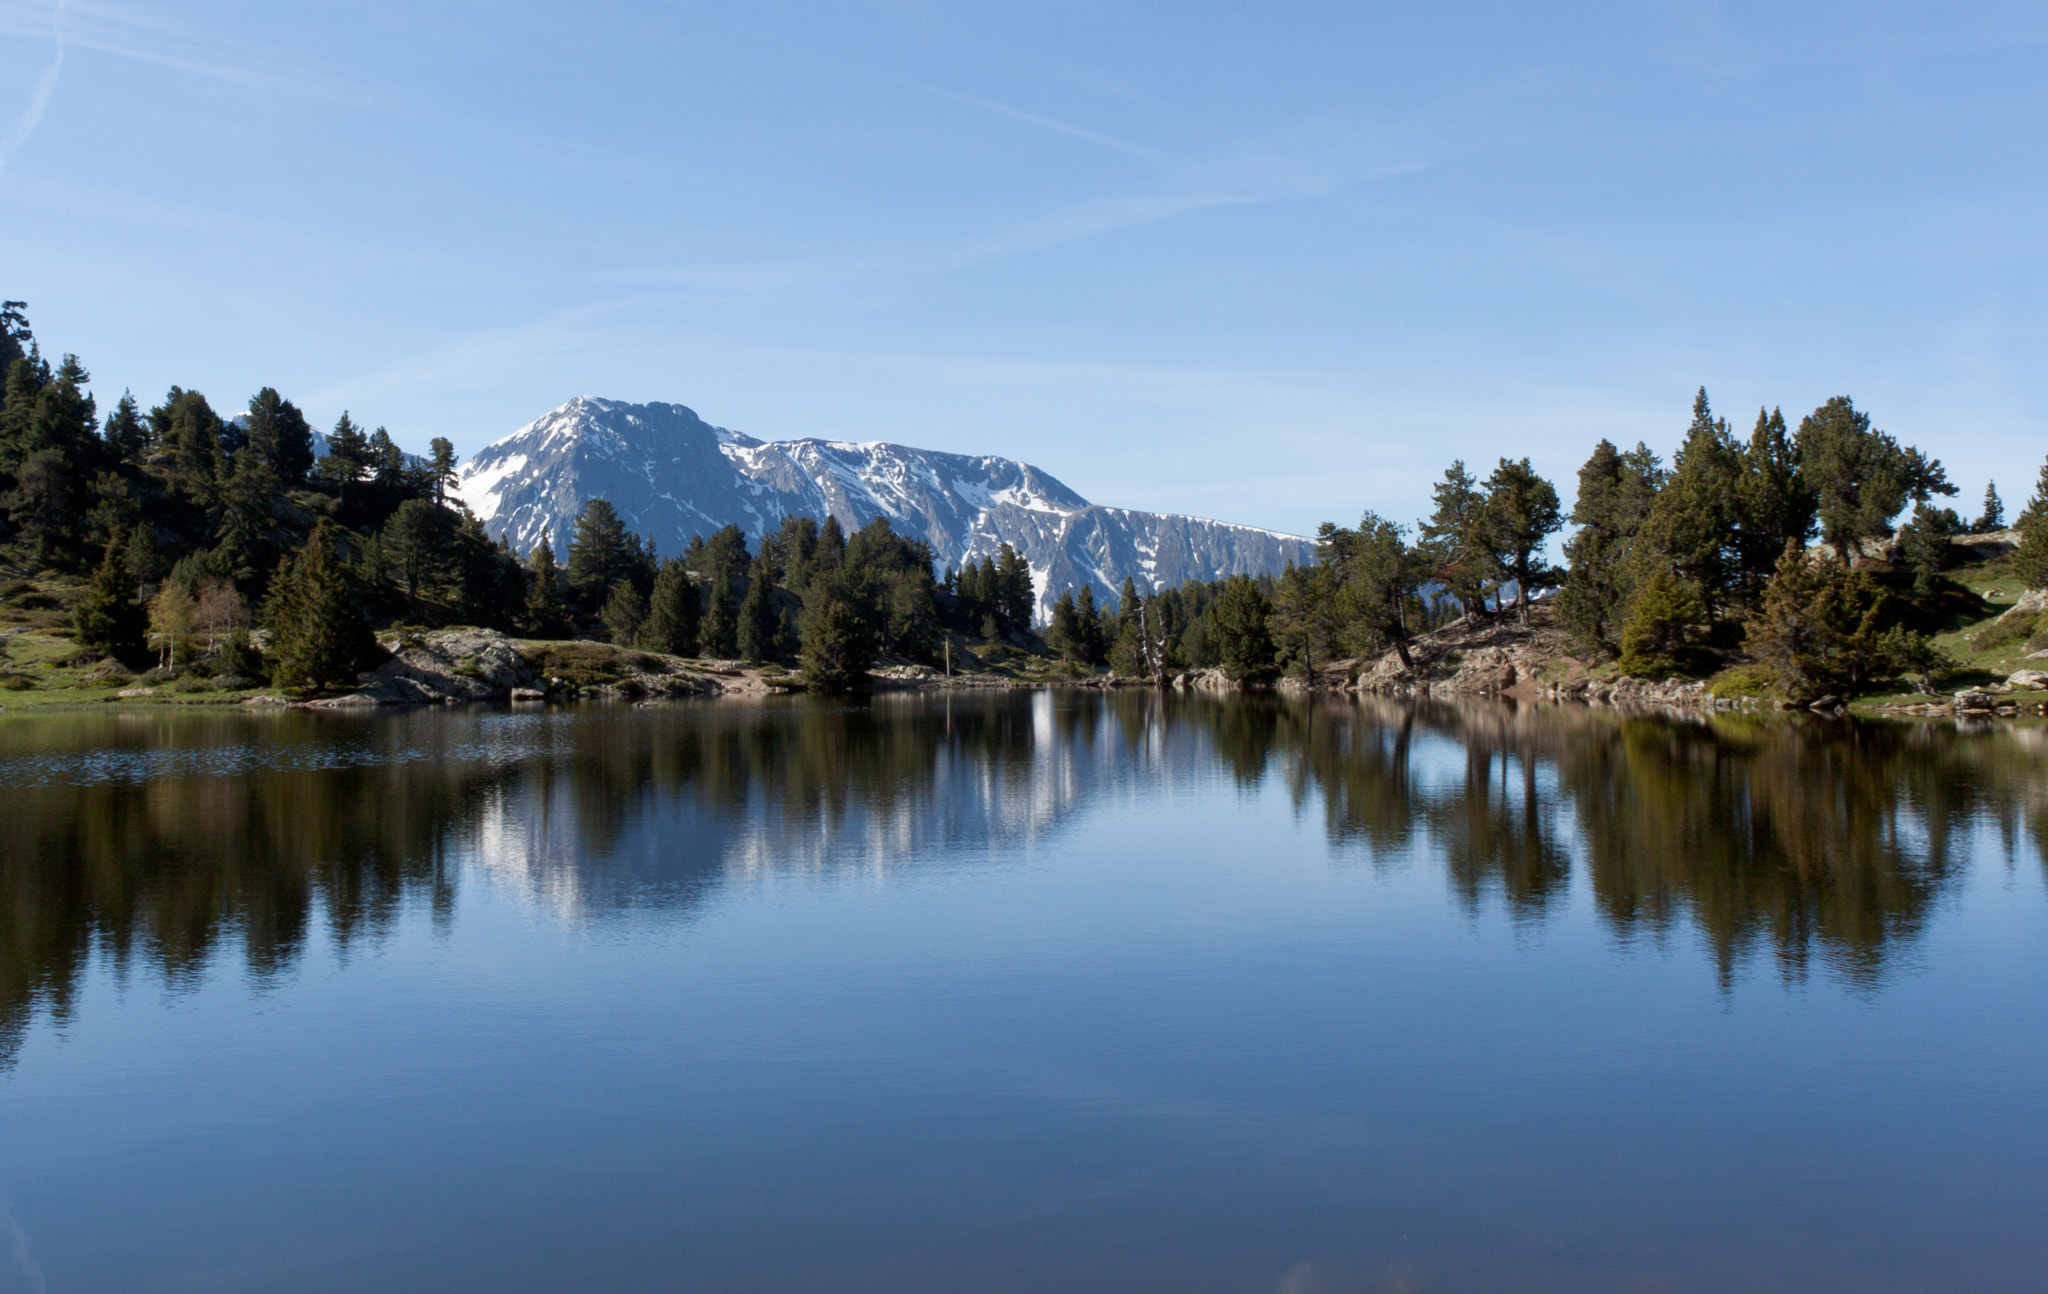 Photograph Reflections by Nicolas Gailland on 500px